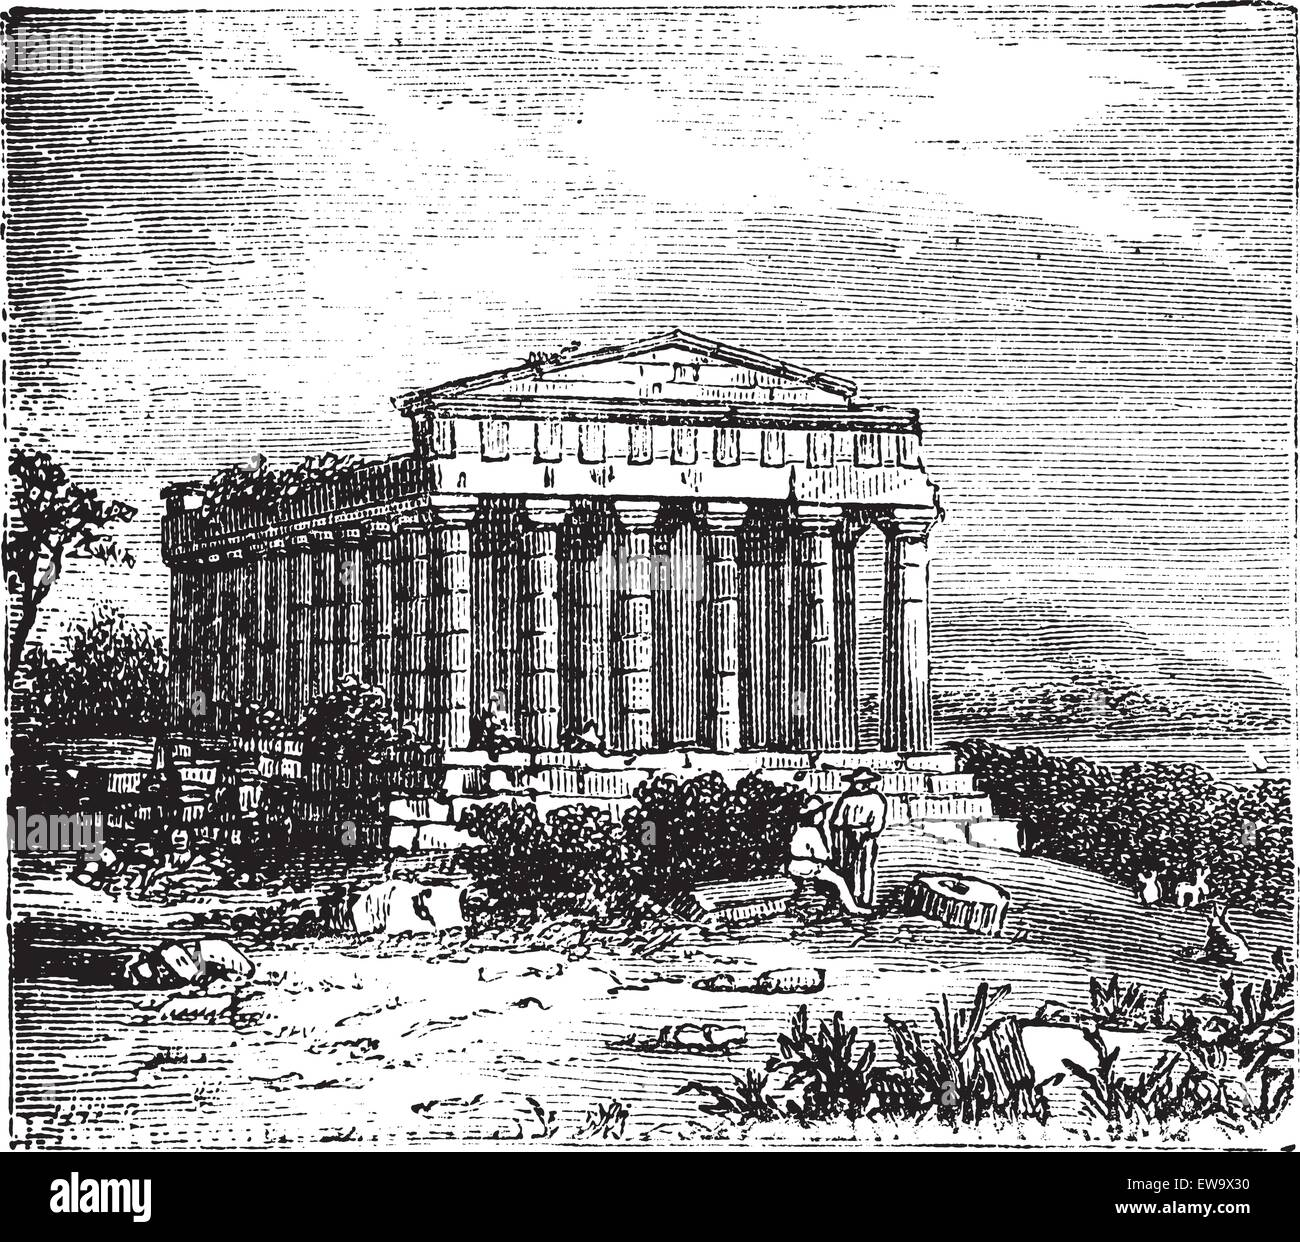 Old engraving of the Temple of Concord, Templum Concordiae, in Agrigente, Rome, Italy. Vintage engraved illustration - Stock Vector